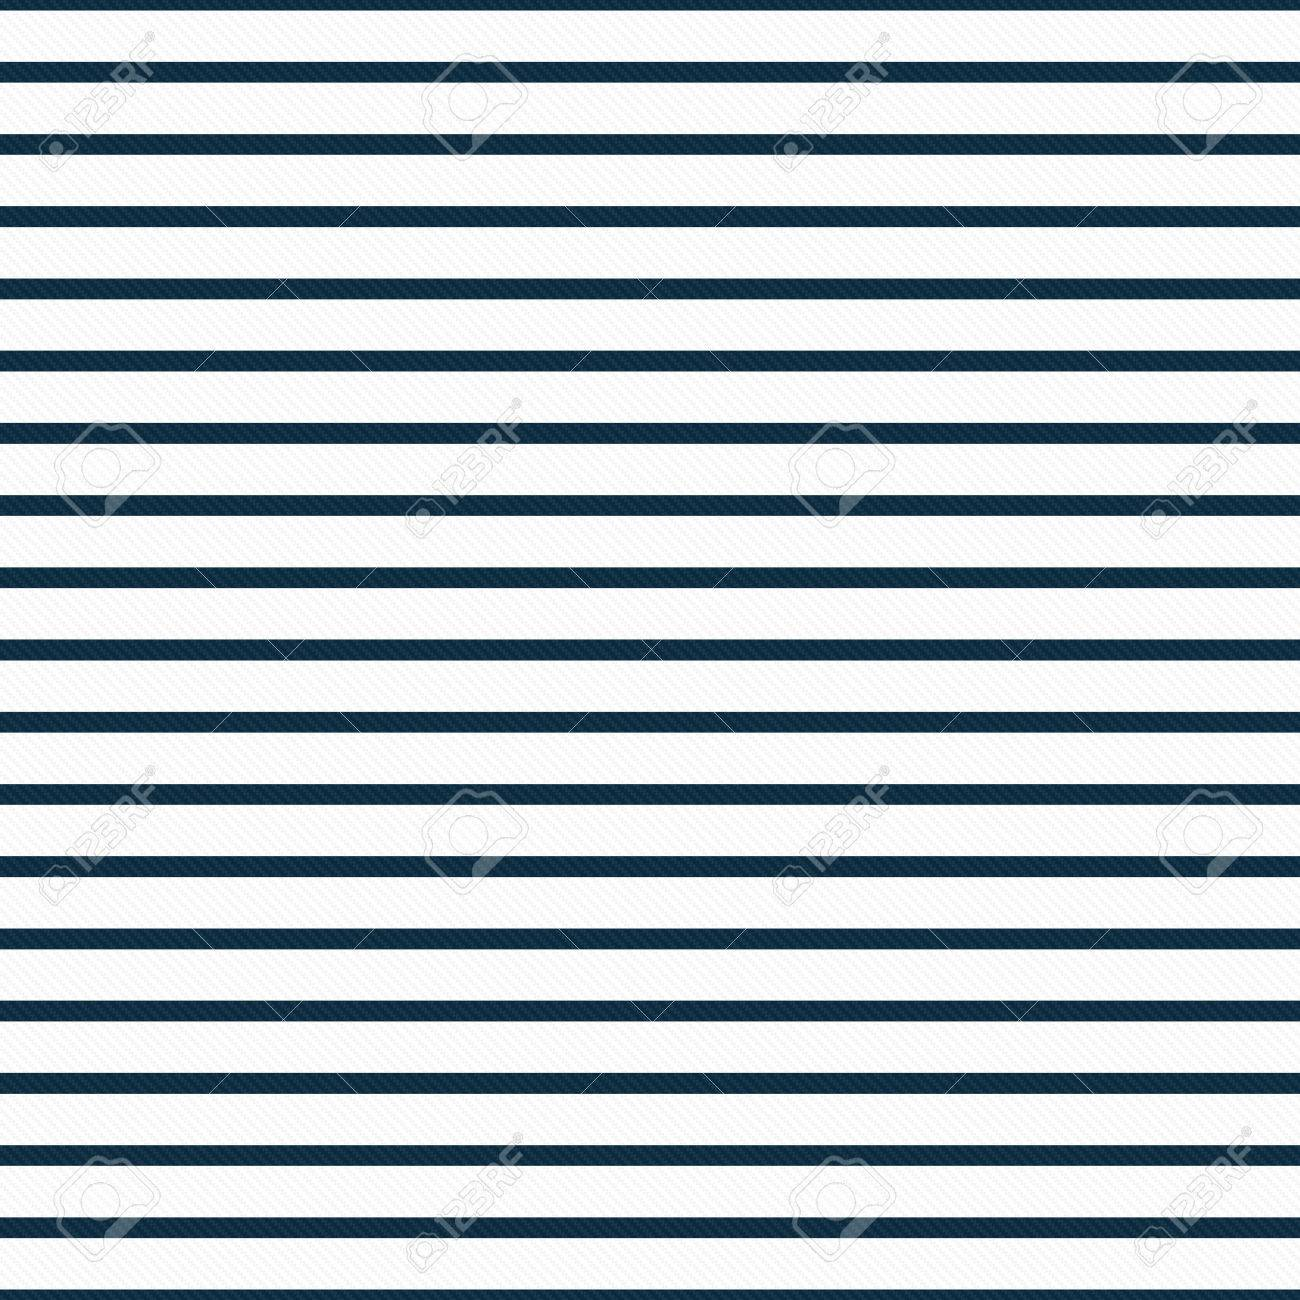 b25a75a58bf Stock Photo - Thin Navy Blue and White Horizontal Striped Textured Fabric  Background that is seamless and repeats